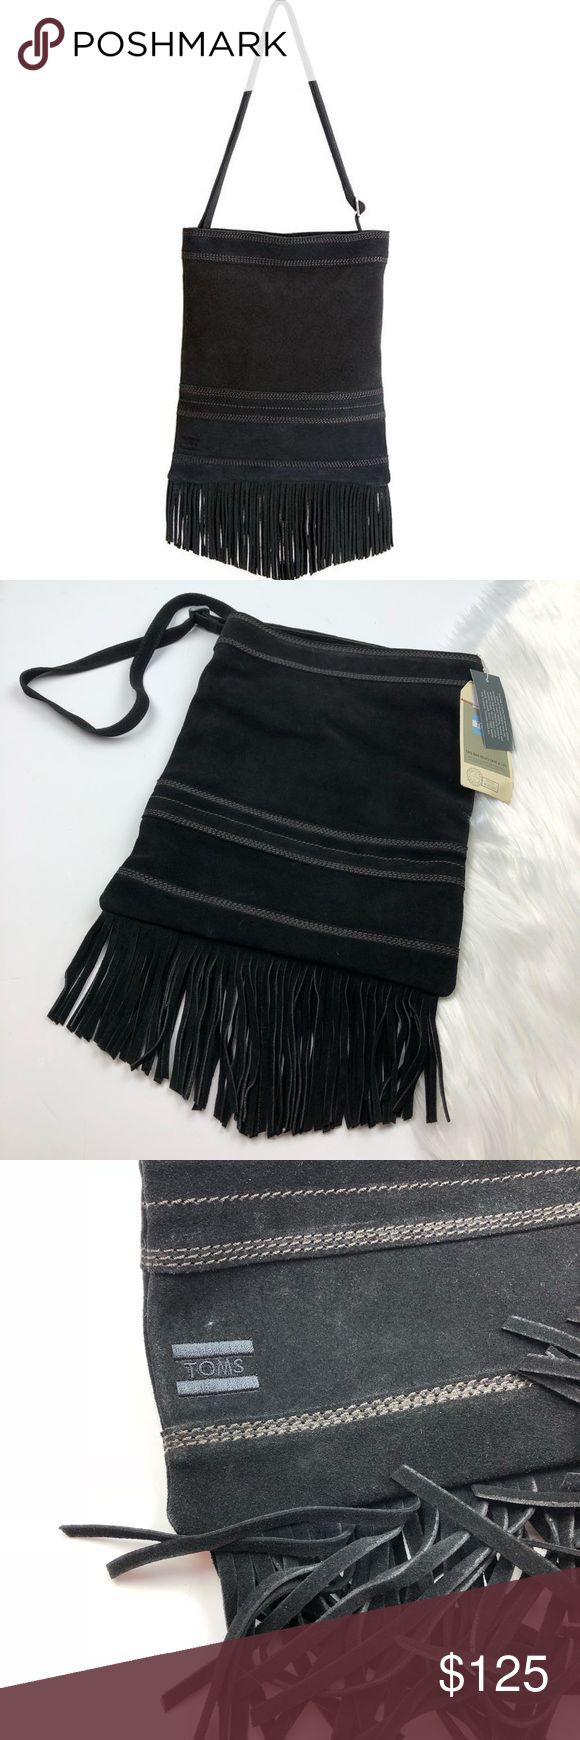 NWT Toms Suede Fringe Crossbody Bag So cute and perfectly on trend! Brand new with tags. Black suede with fringe bottom. Genuine leather. Printed interior. No trades!! 0102017450gwpg Toms Bags Crossbody Bags